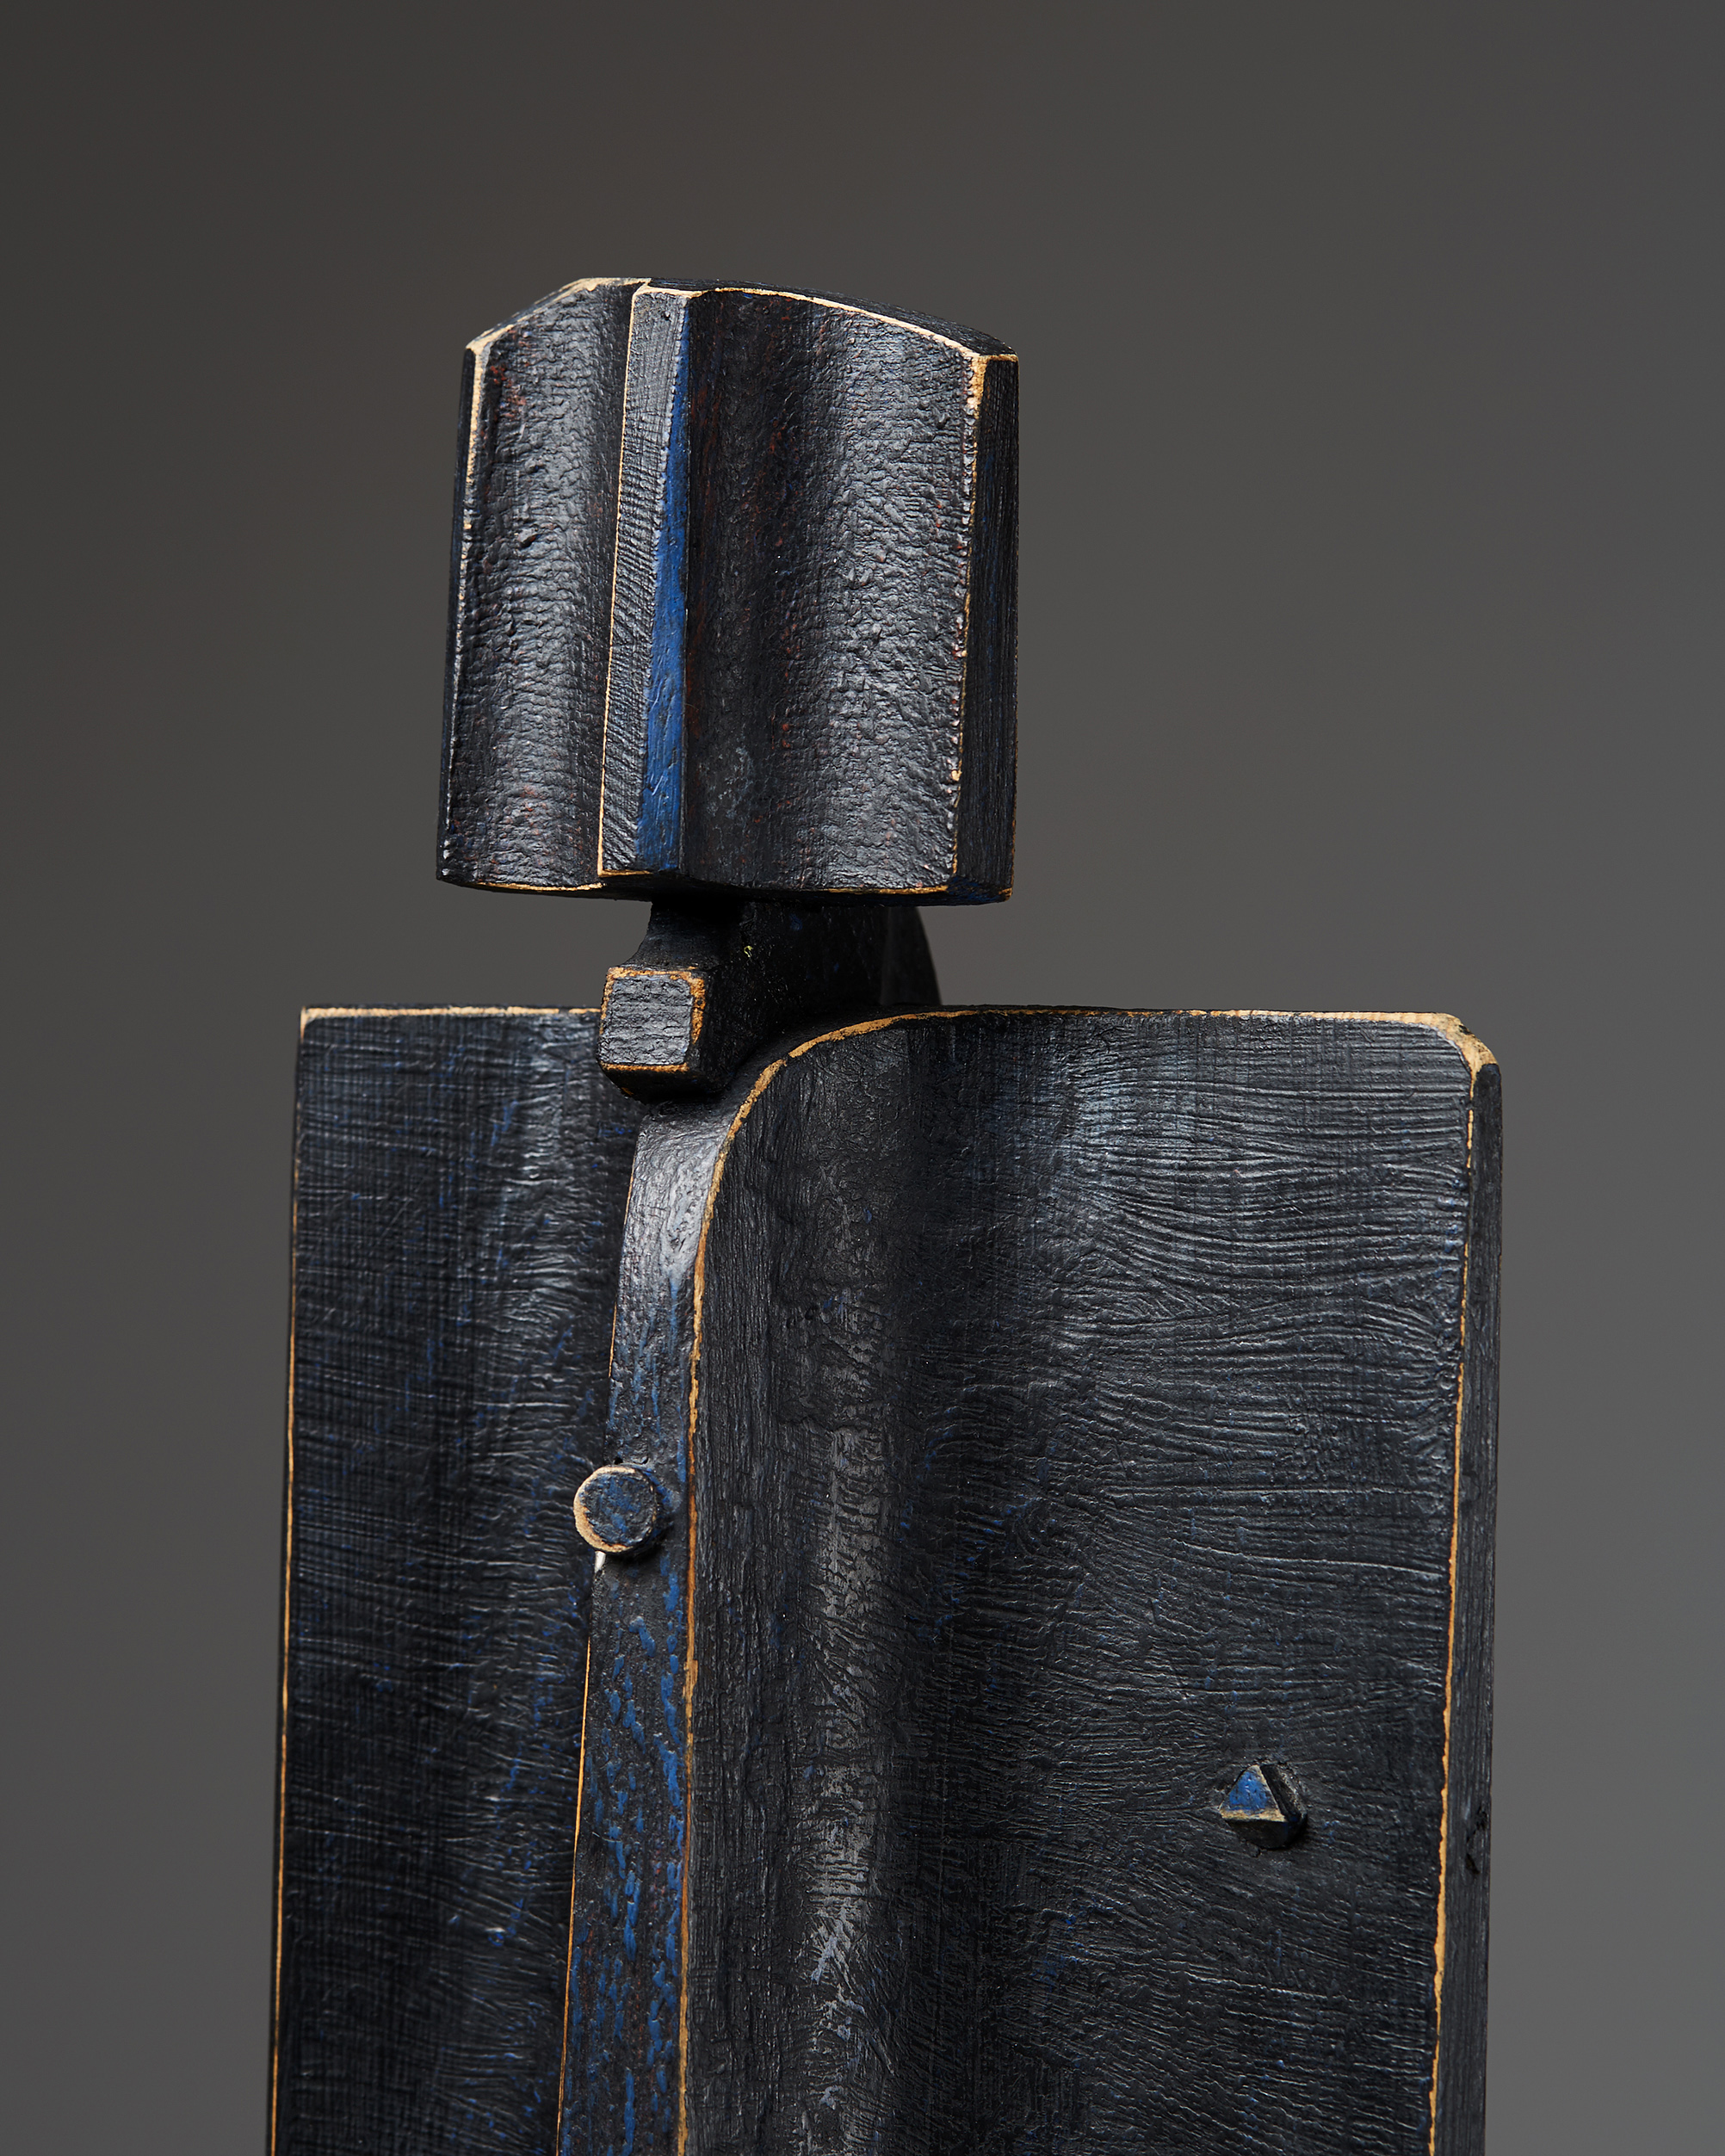 Sculpture by Kimmo Pyykkö, Finland. 1970's. by Modernity on curated-crowd.com